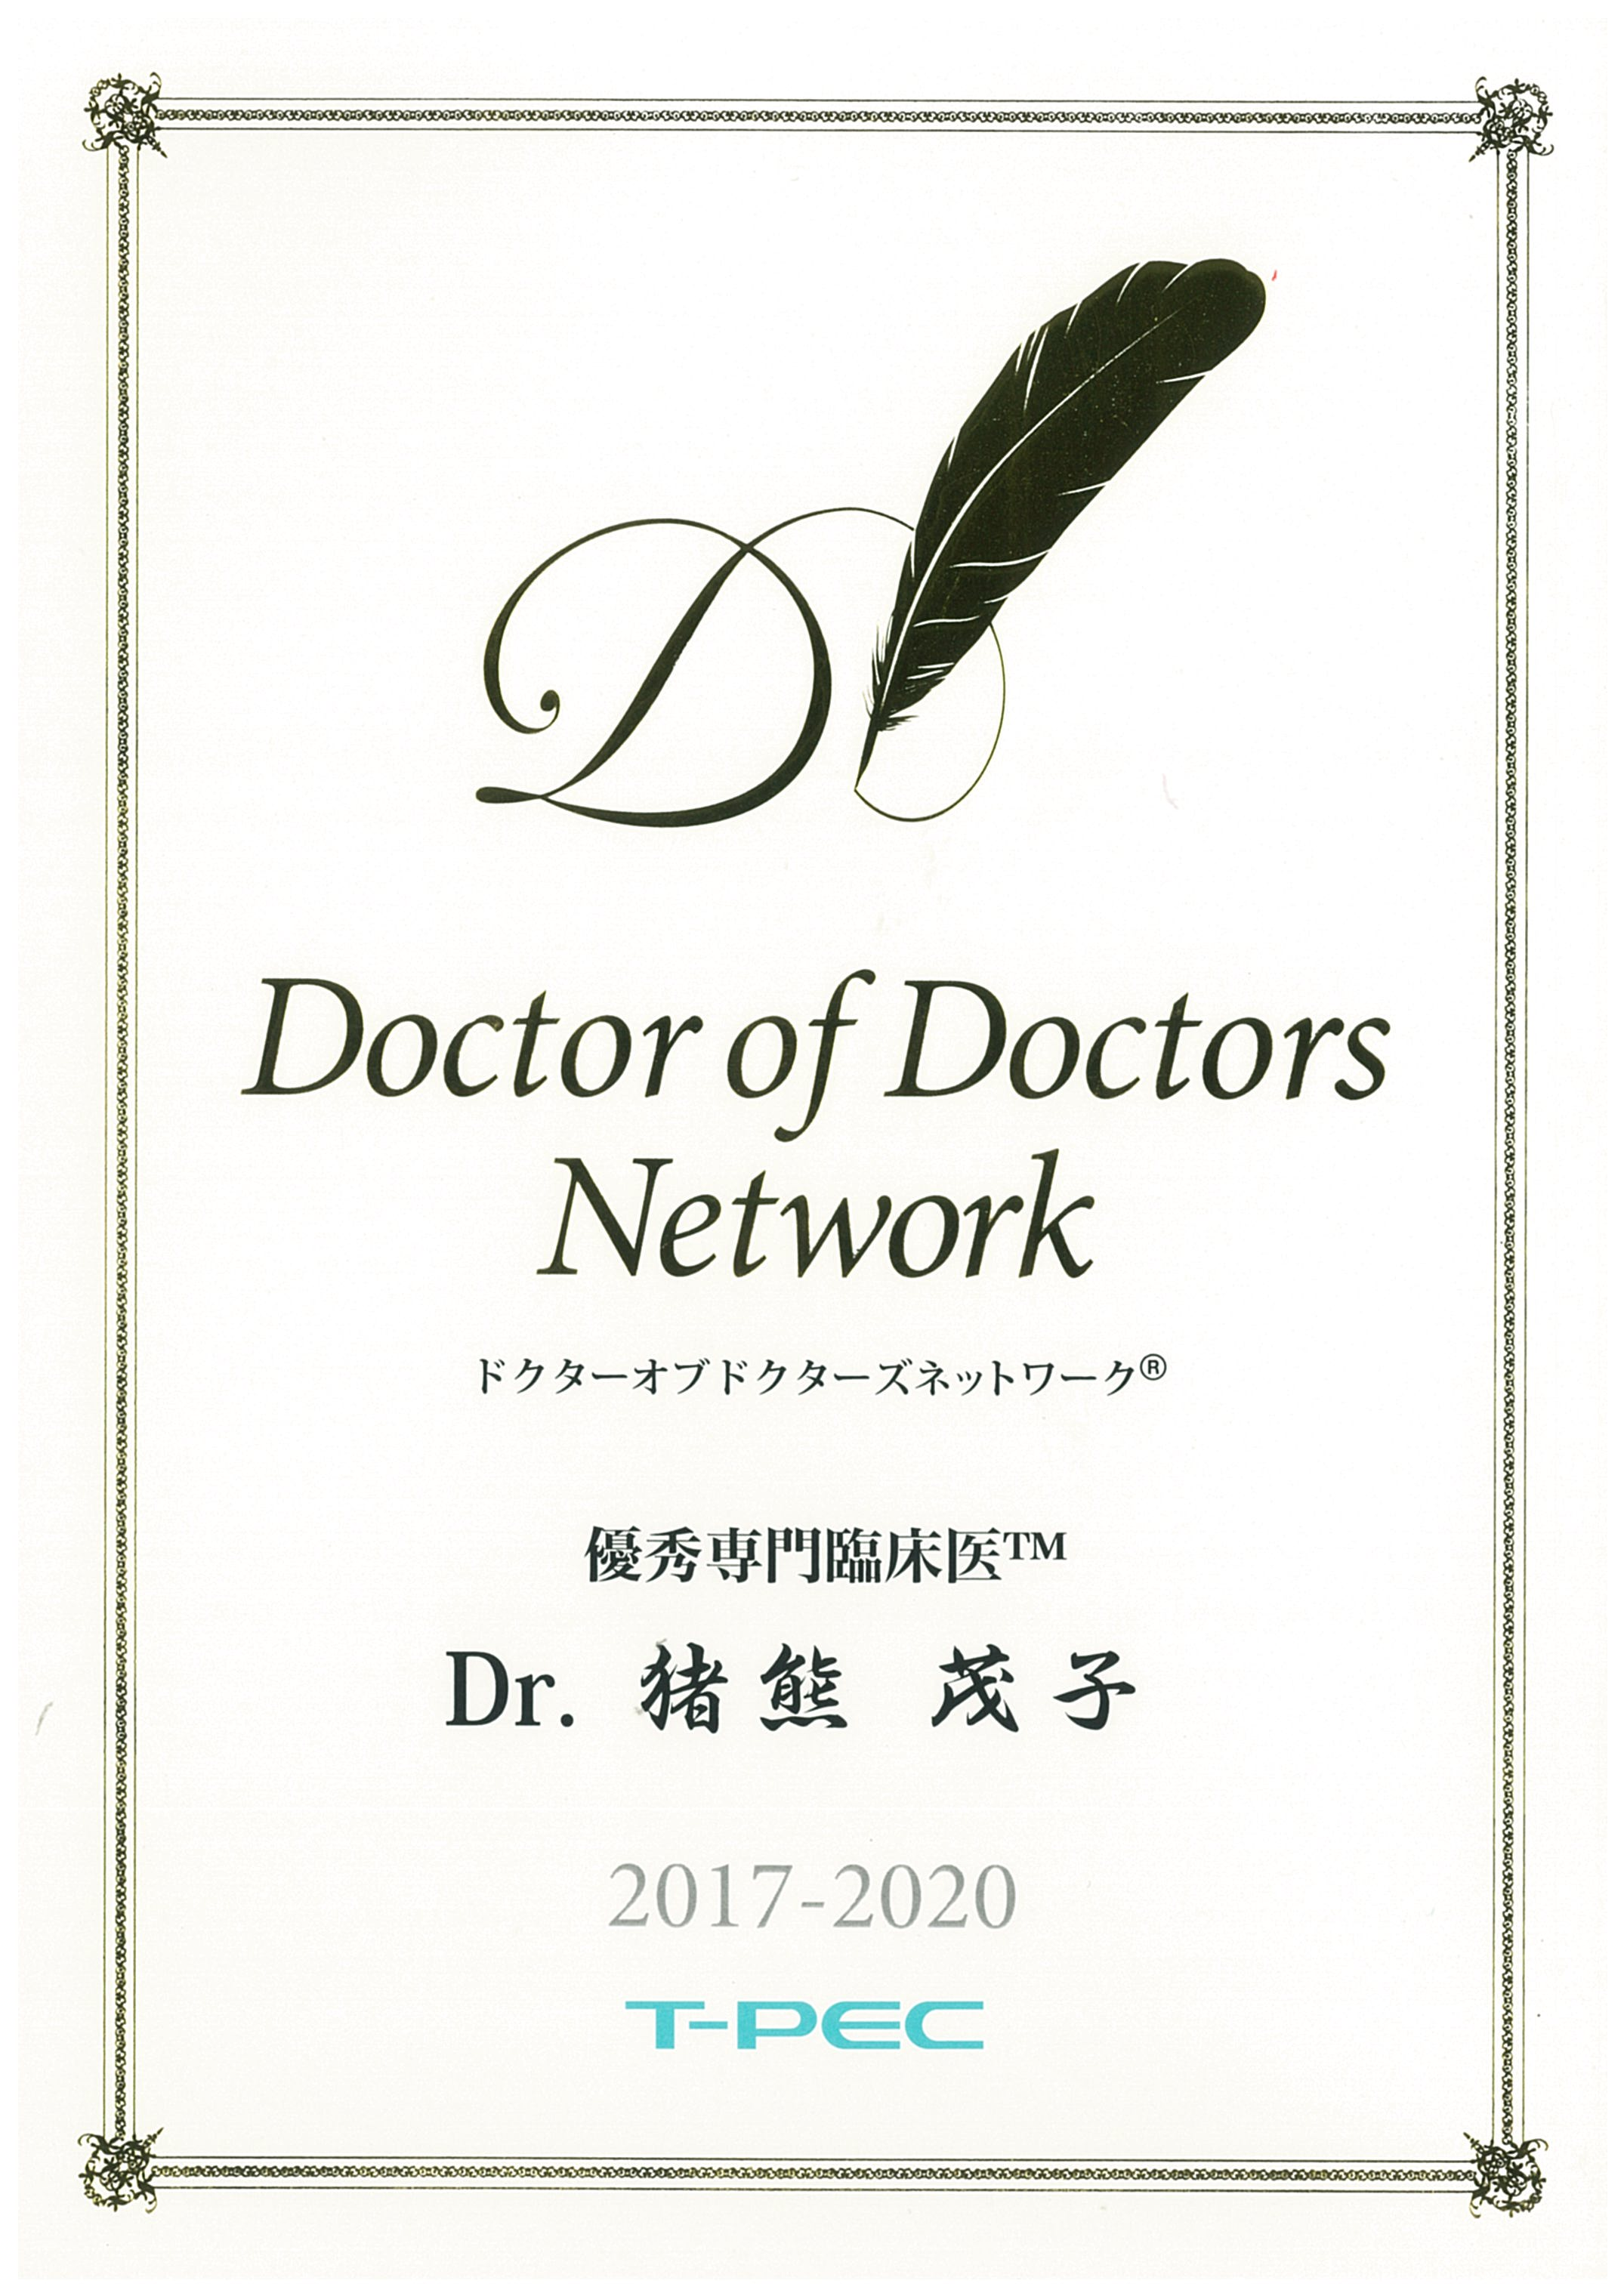 DoctorsNetwork_2017-2020